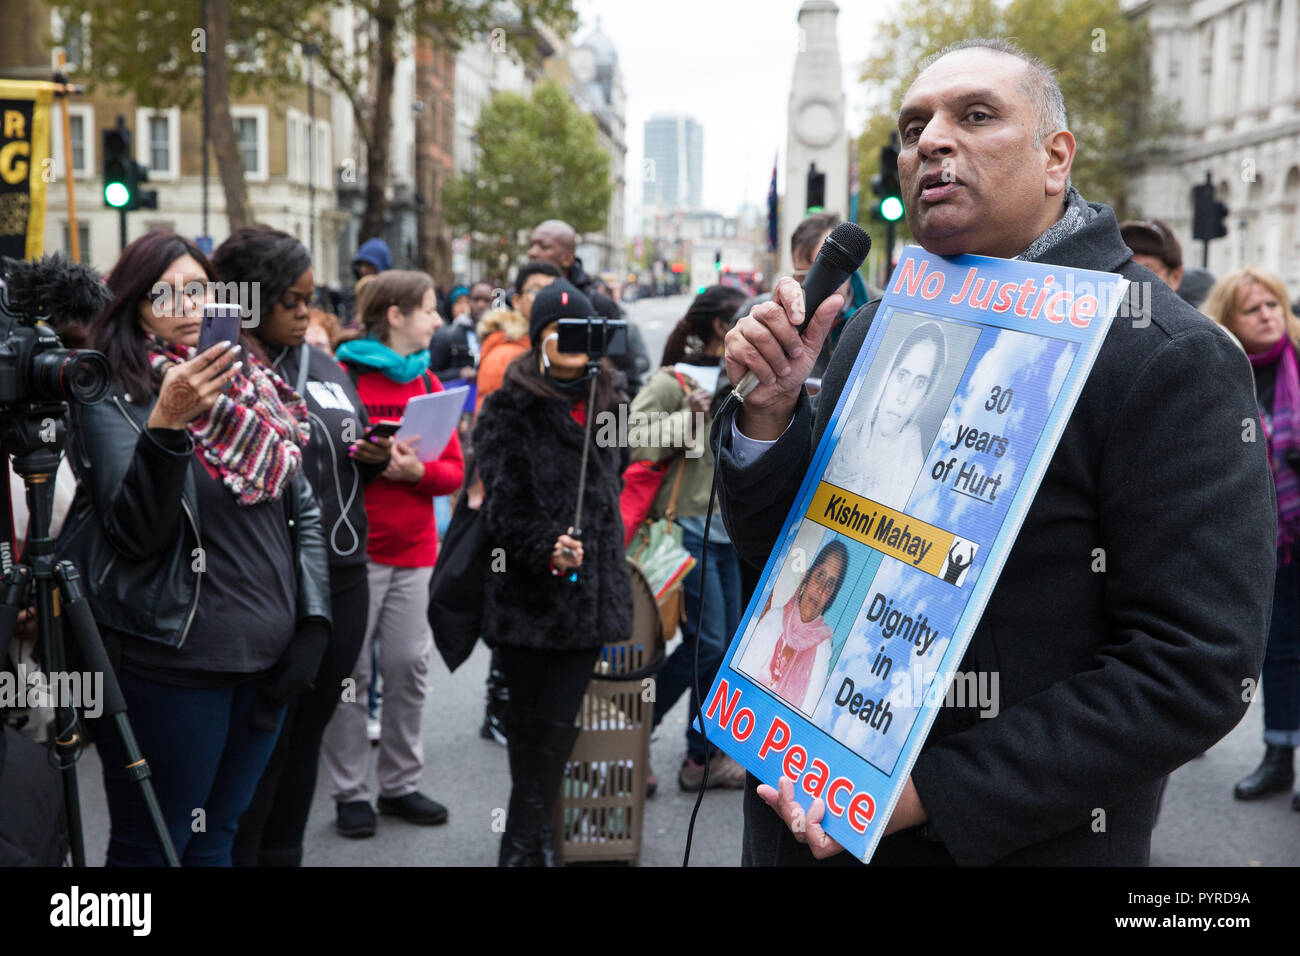 London, UK. 27th October, 2018. Raj Mahay, son of Kishni Mahay, addresses campaigners from the United Families and Friends Campaign (UFFC). - Stock Image